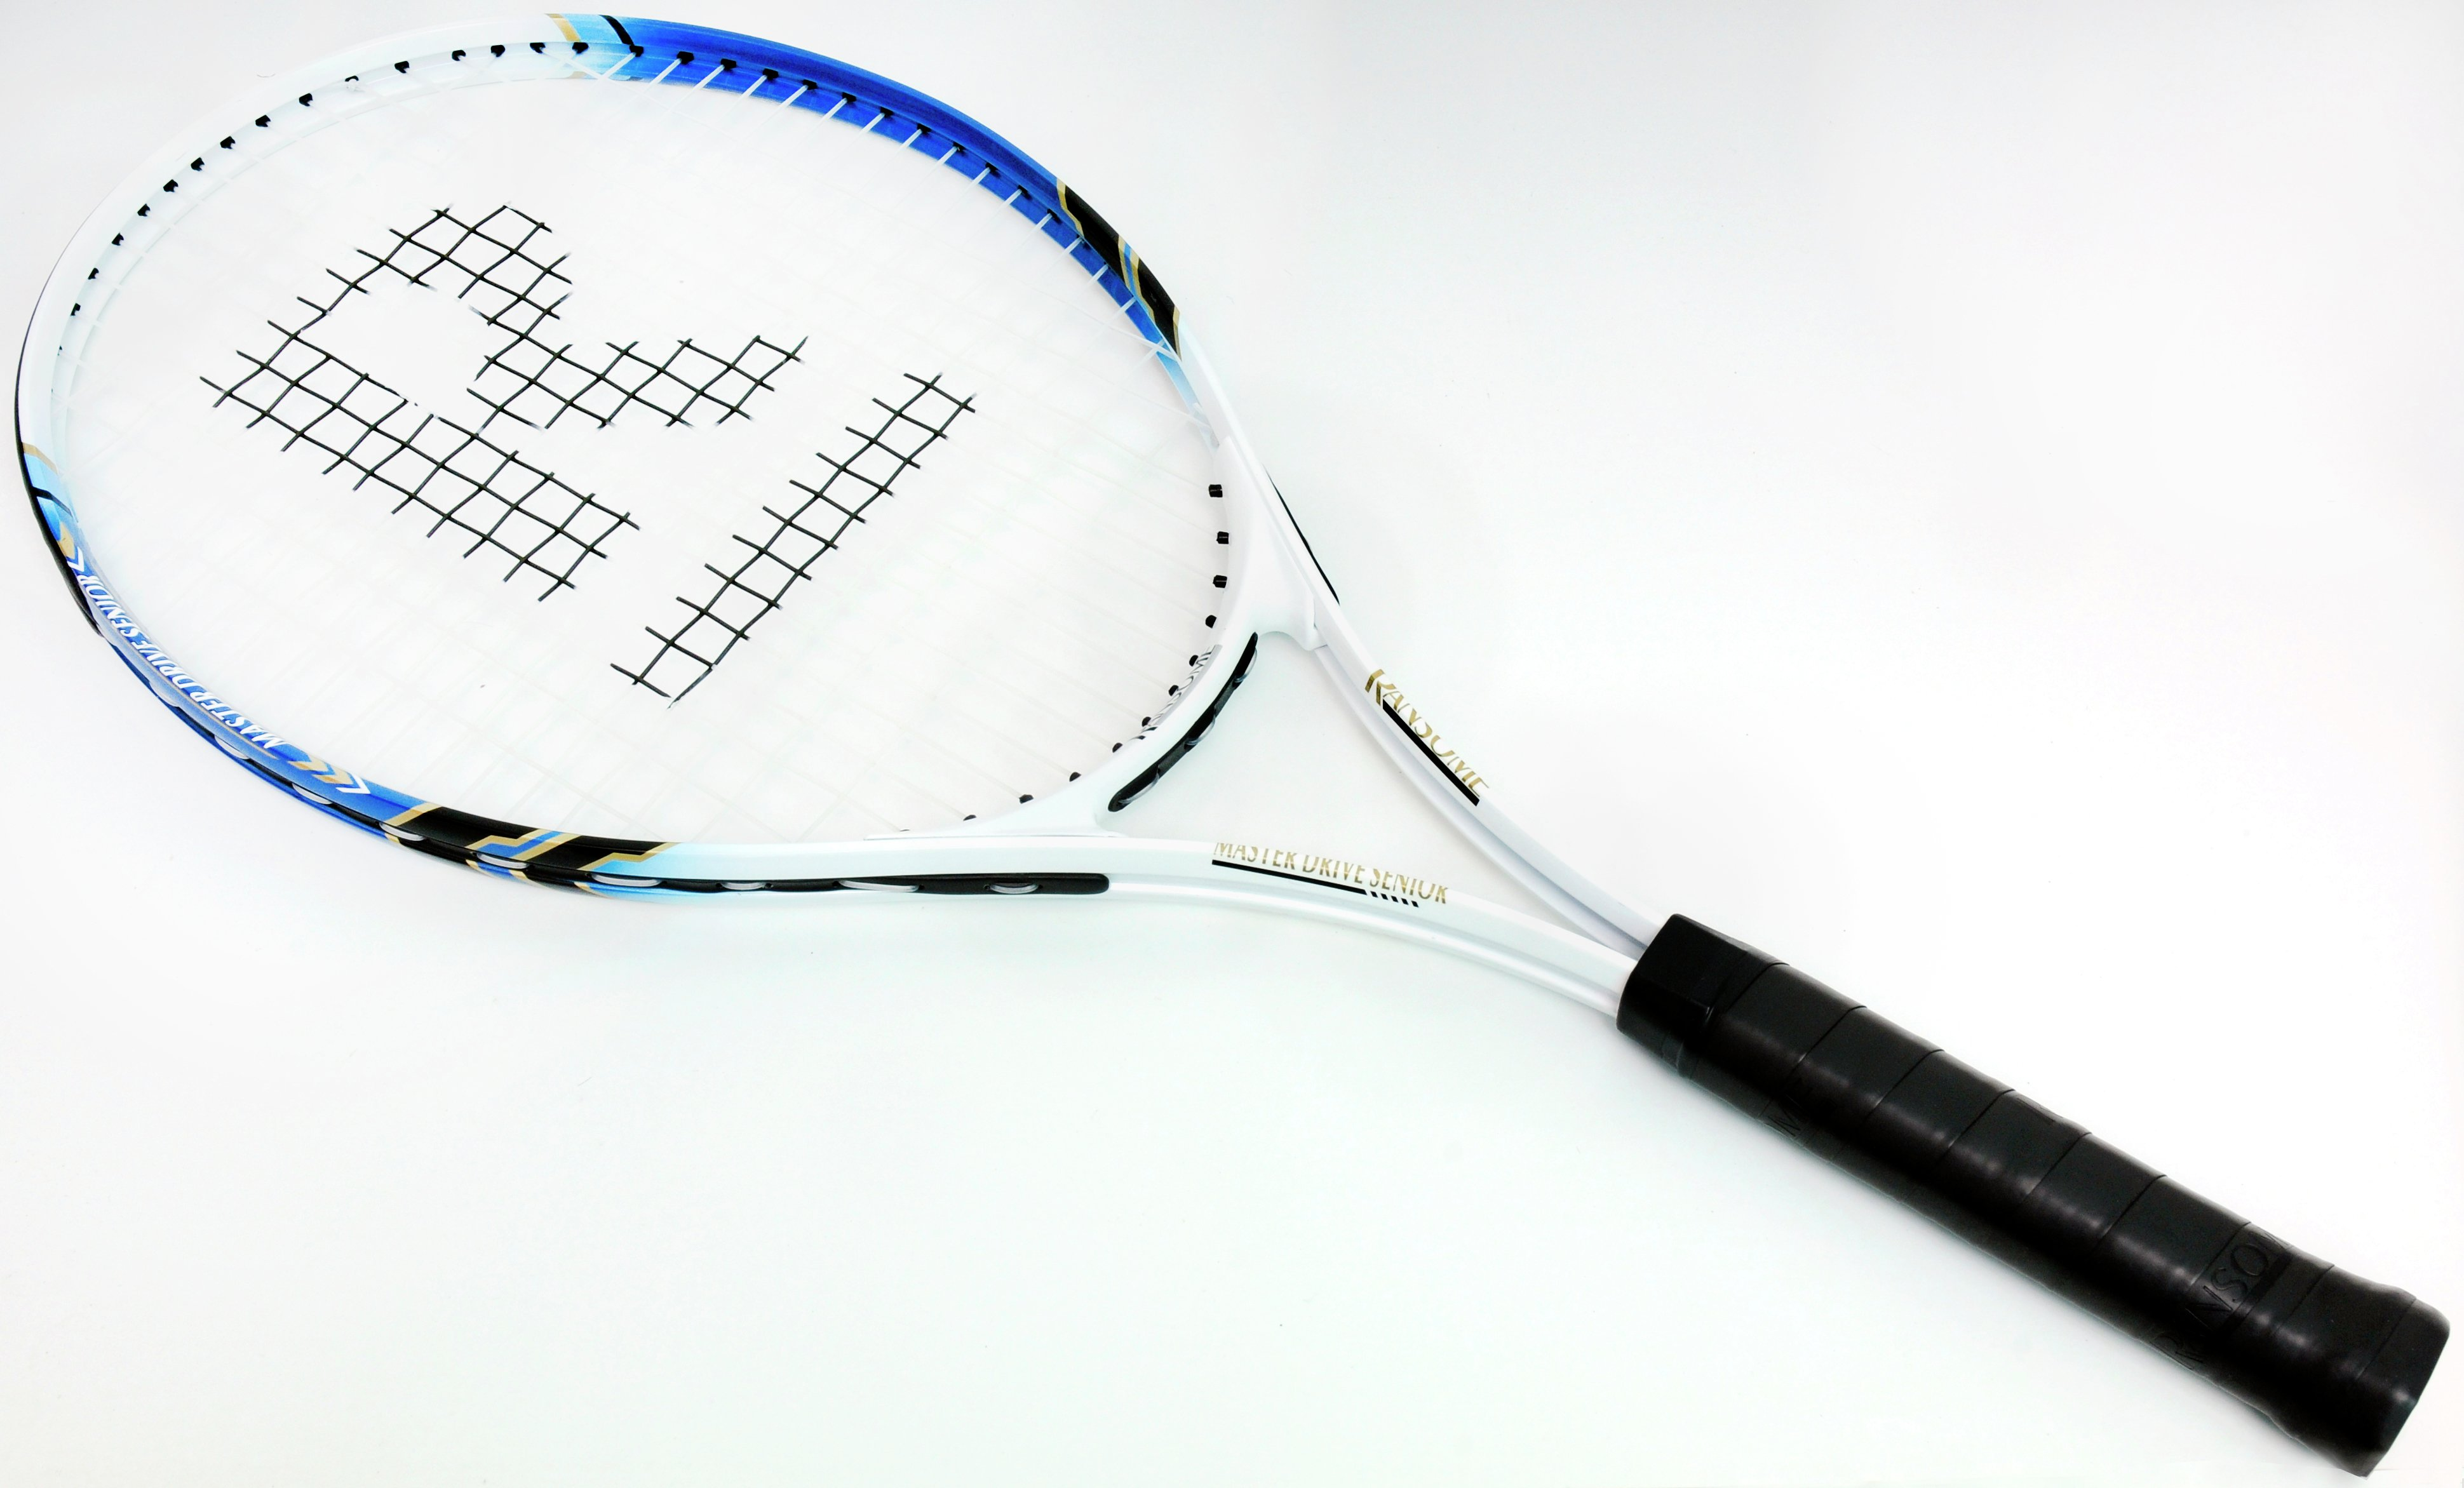 Ransome - Master Drive 27 Inch Senior Tennis Racket lowest price